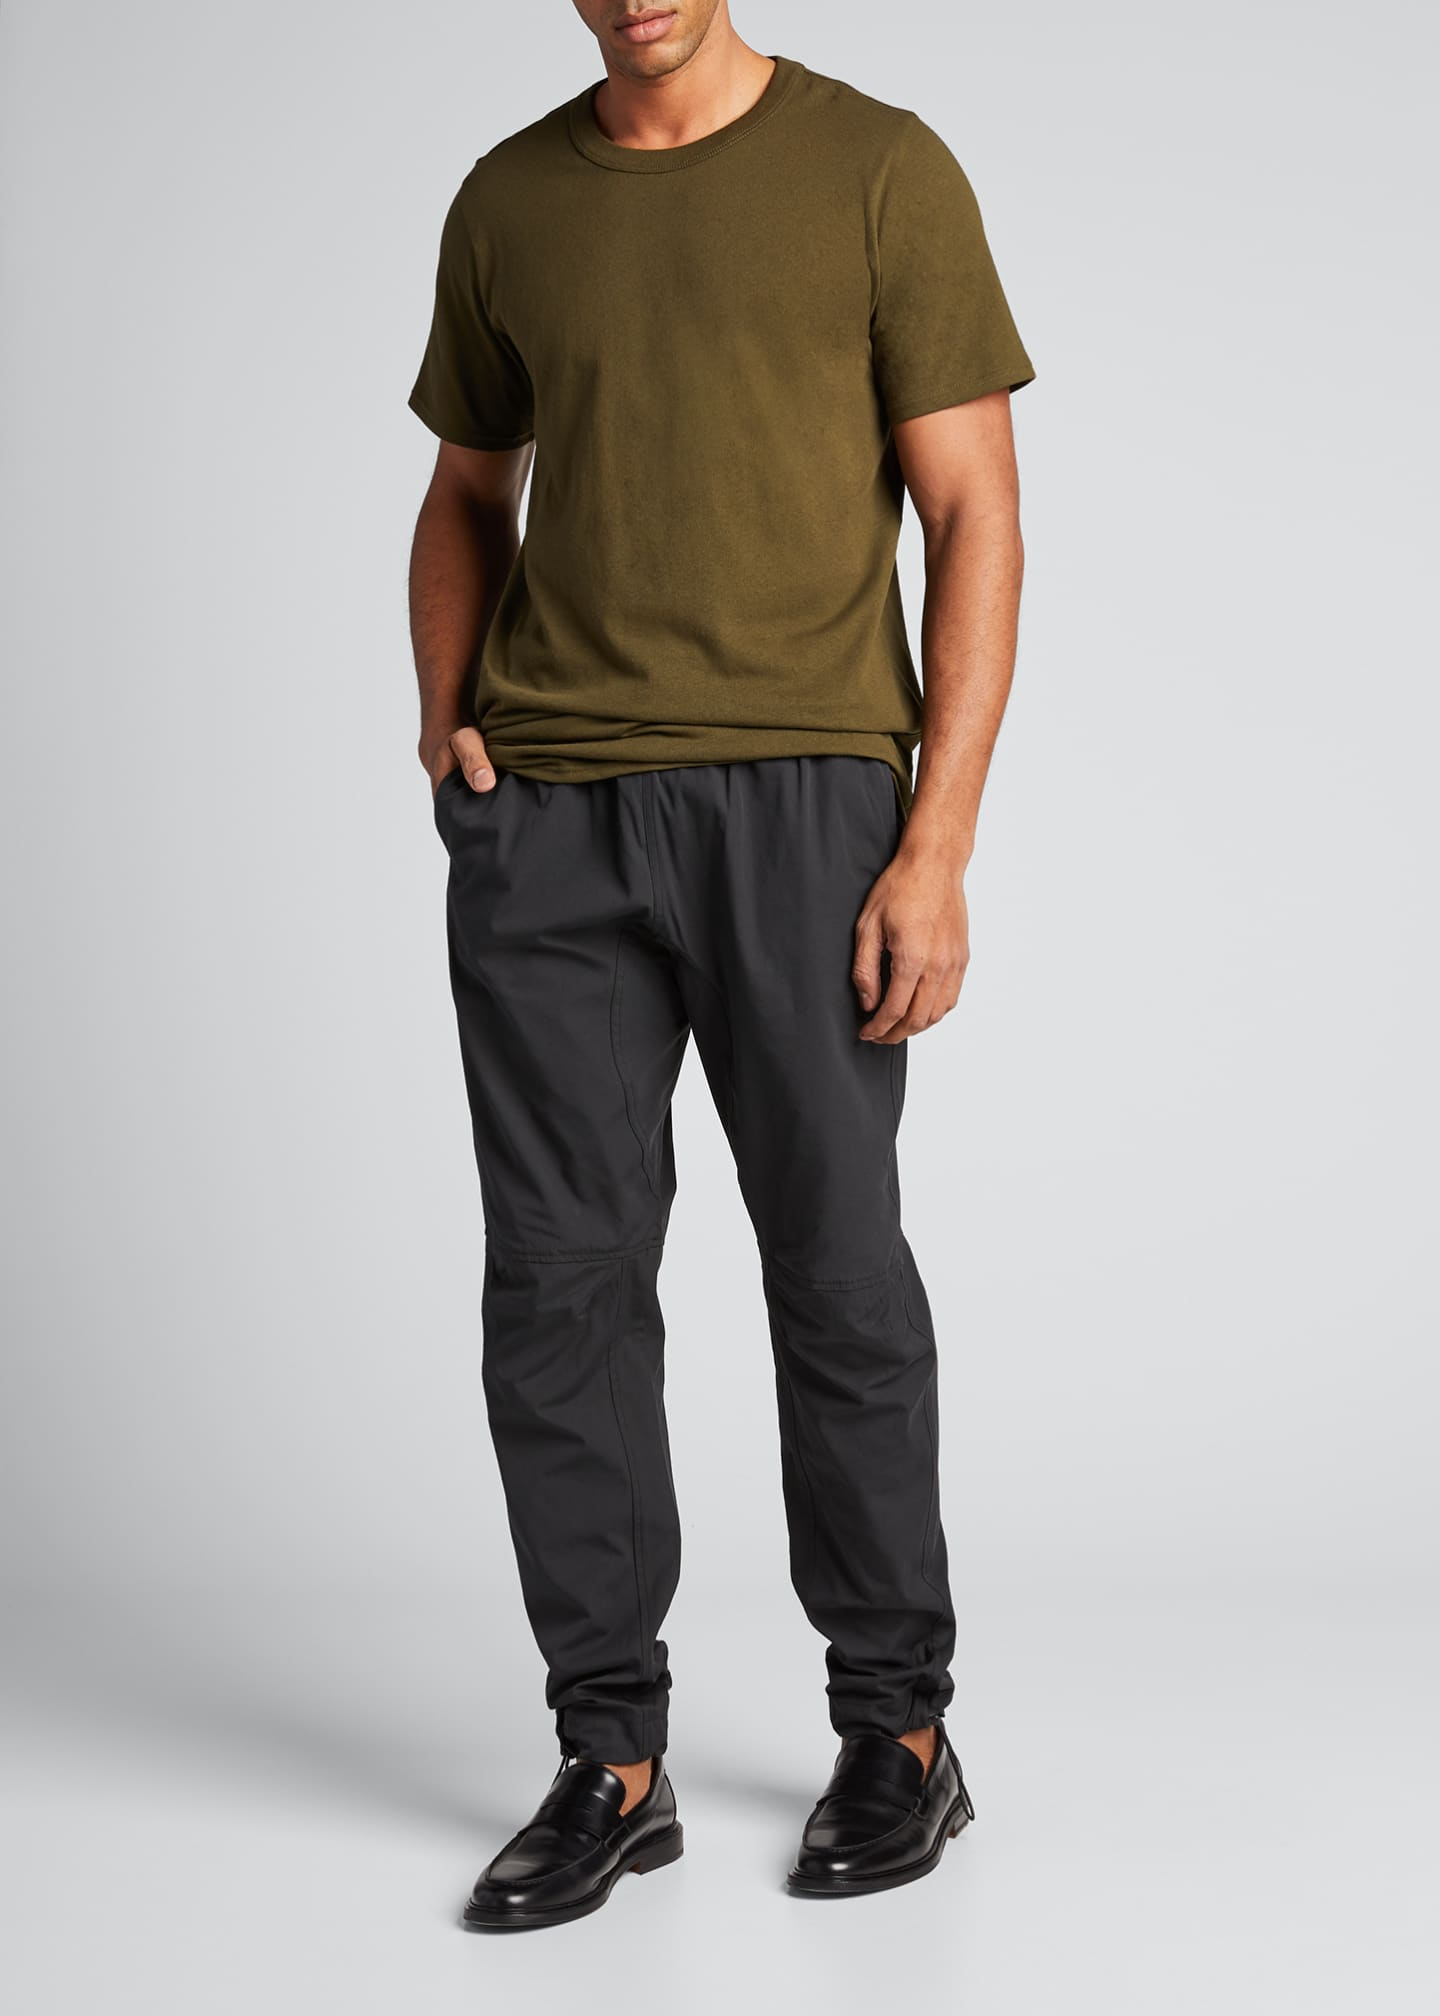 Image 1 of 5: Men's Solid Lightweight Crewneck Tee